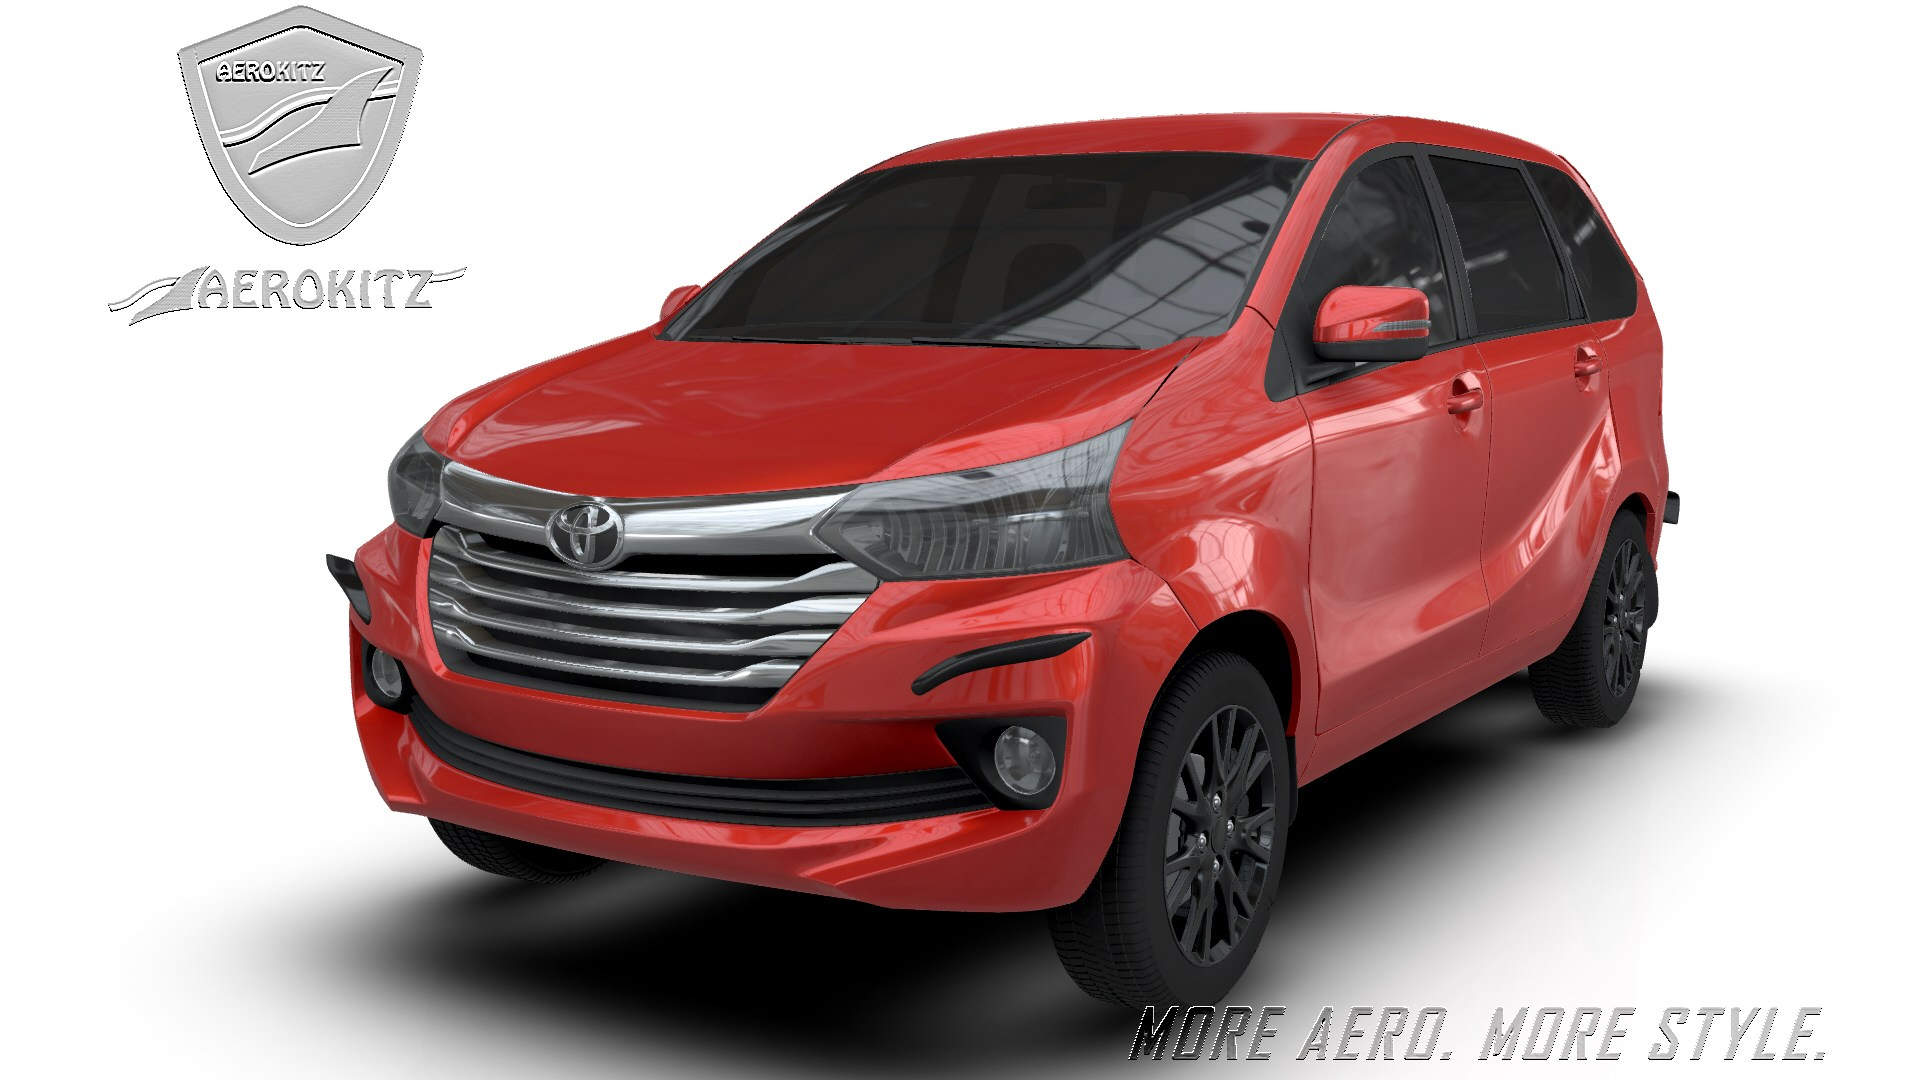 aksesoris grand new avanza 2015 all camry 2017 pantip 84 modifikasi mobil